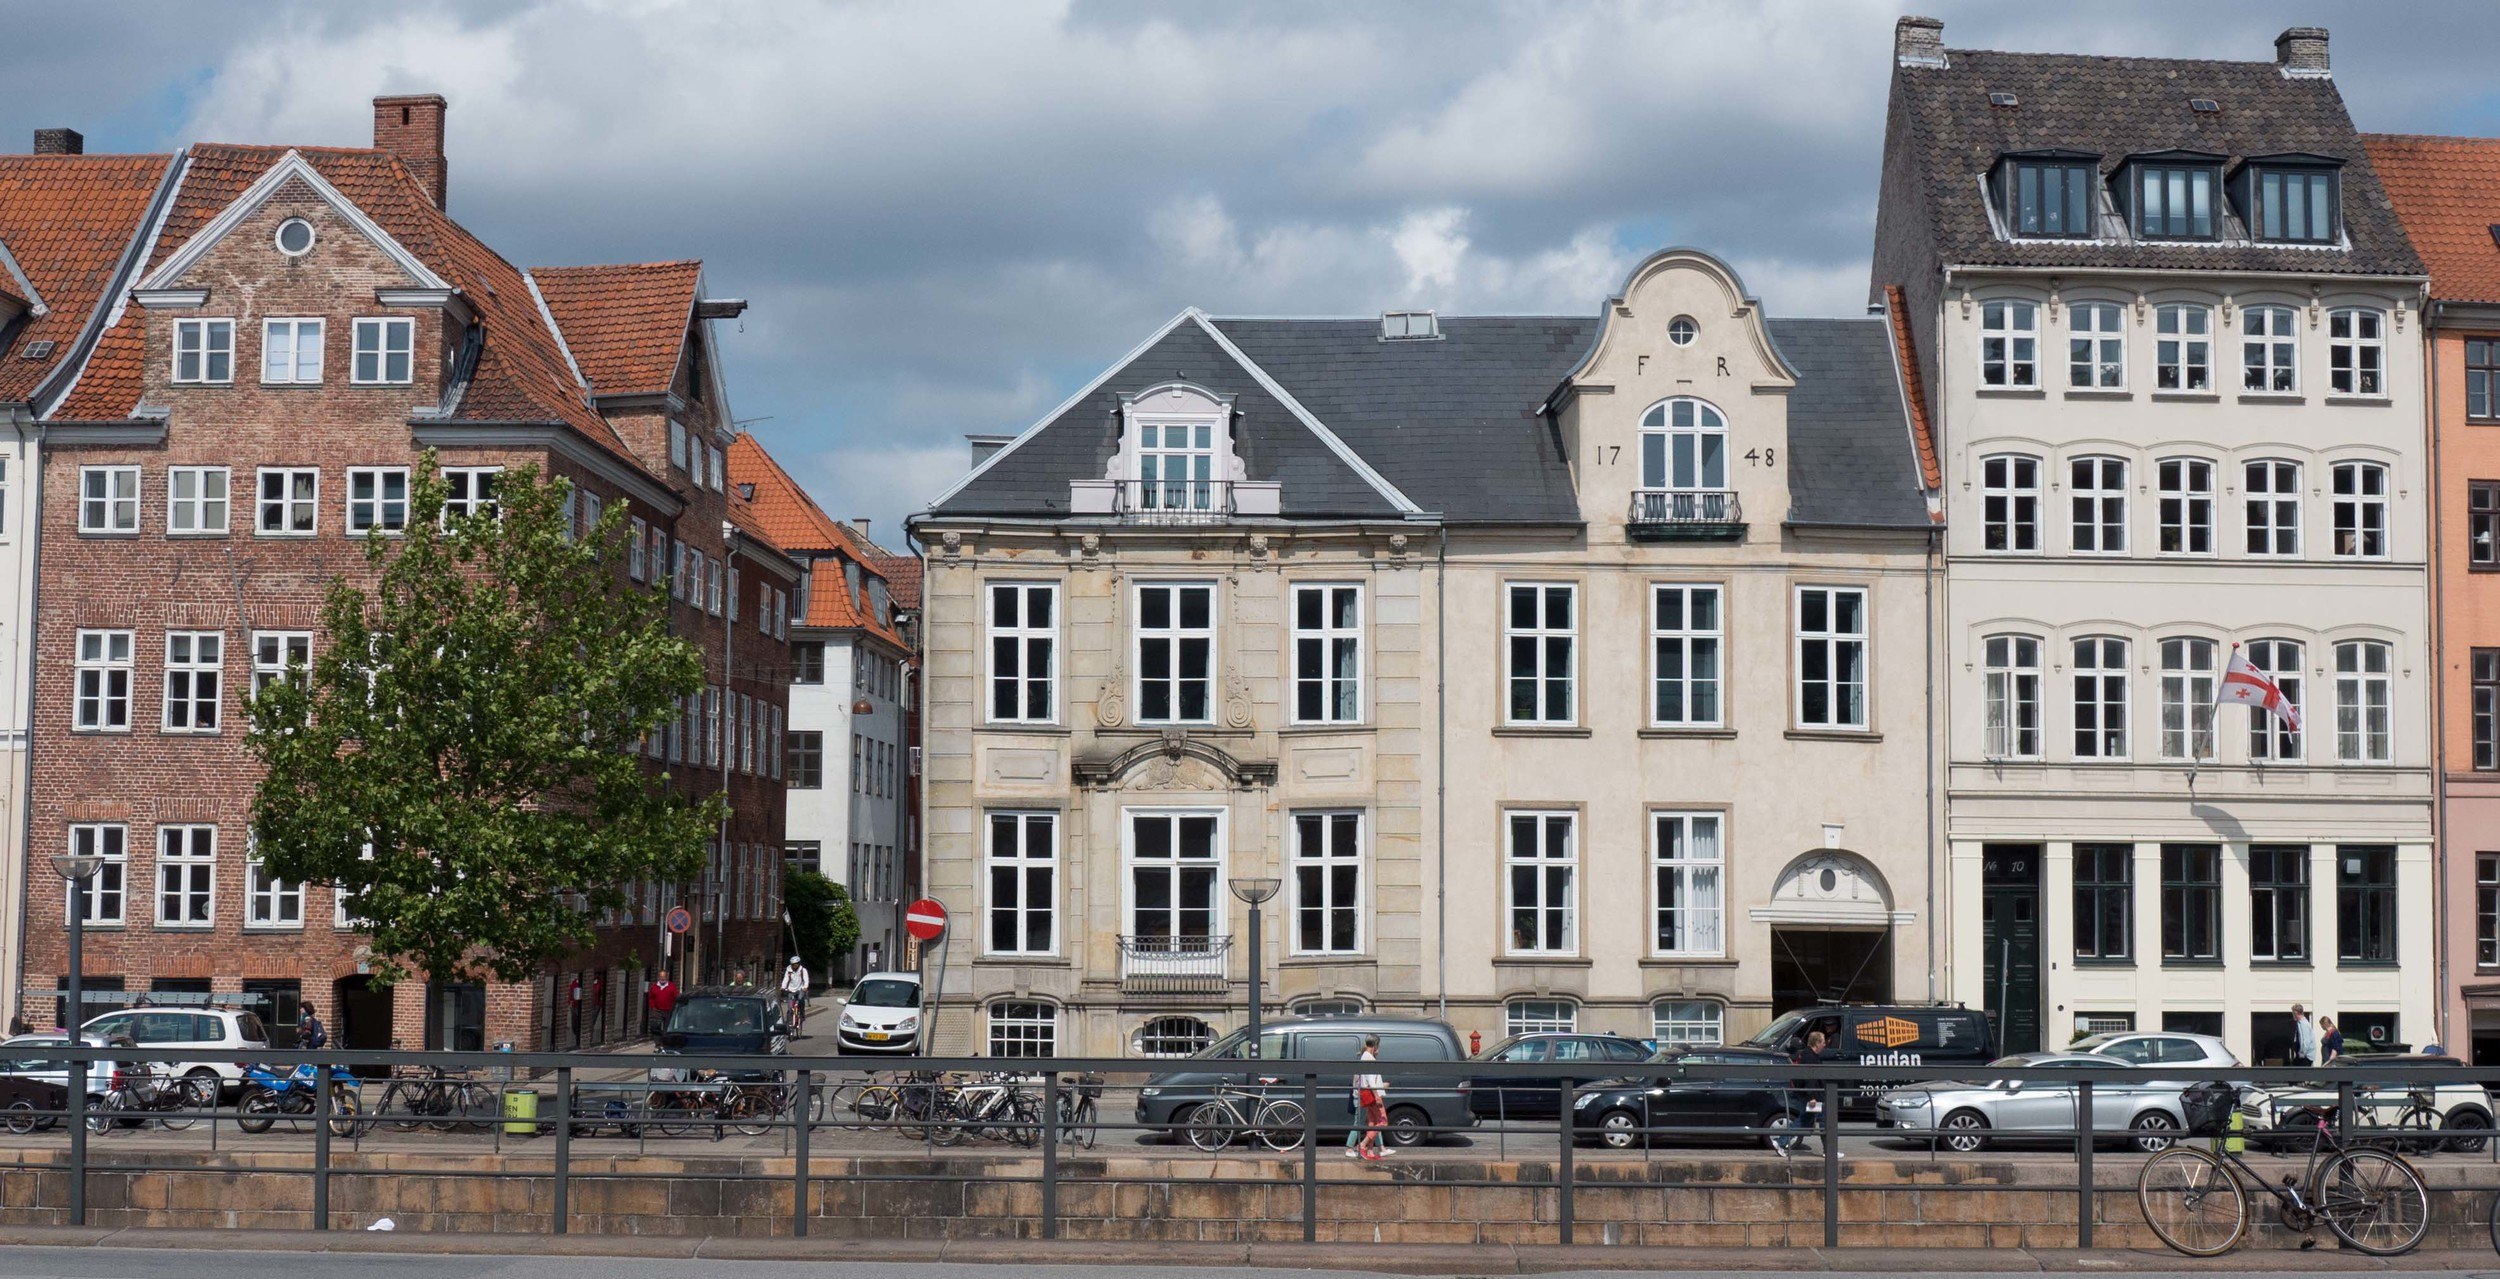 Nybrogade, Copenhagen. The brick house is typical of buildings constructed after the fire of 1728. The mansion in the centre was built in 1732 for J Ziegler the Court confectioner and the adjoining buildings to the right, one dated 1748, are typical of the grey and cream stone colours that were common in Copenhagen through the second half of the 18th and the early 19th centuries.